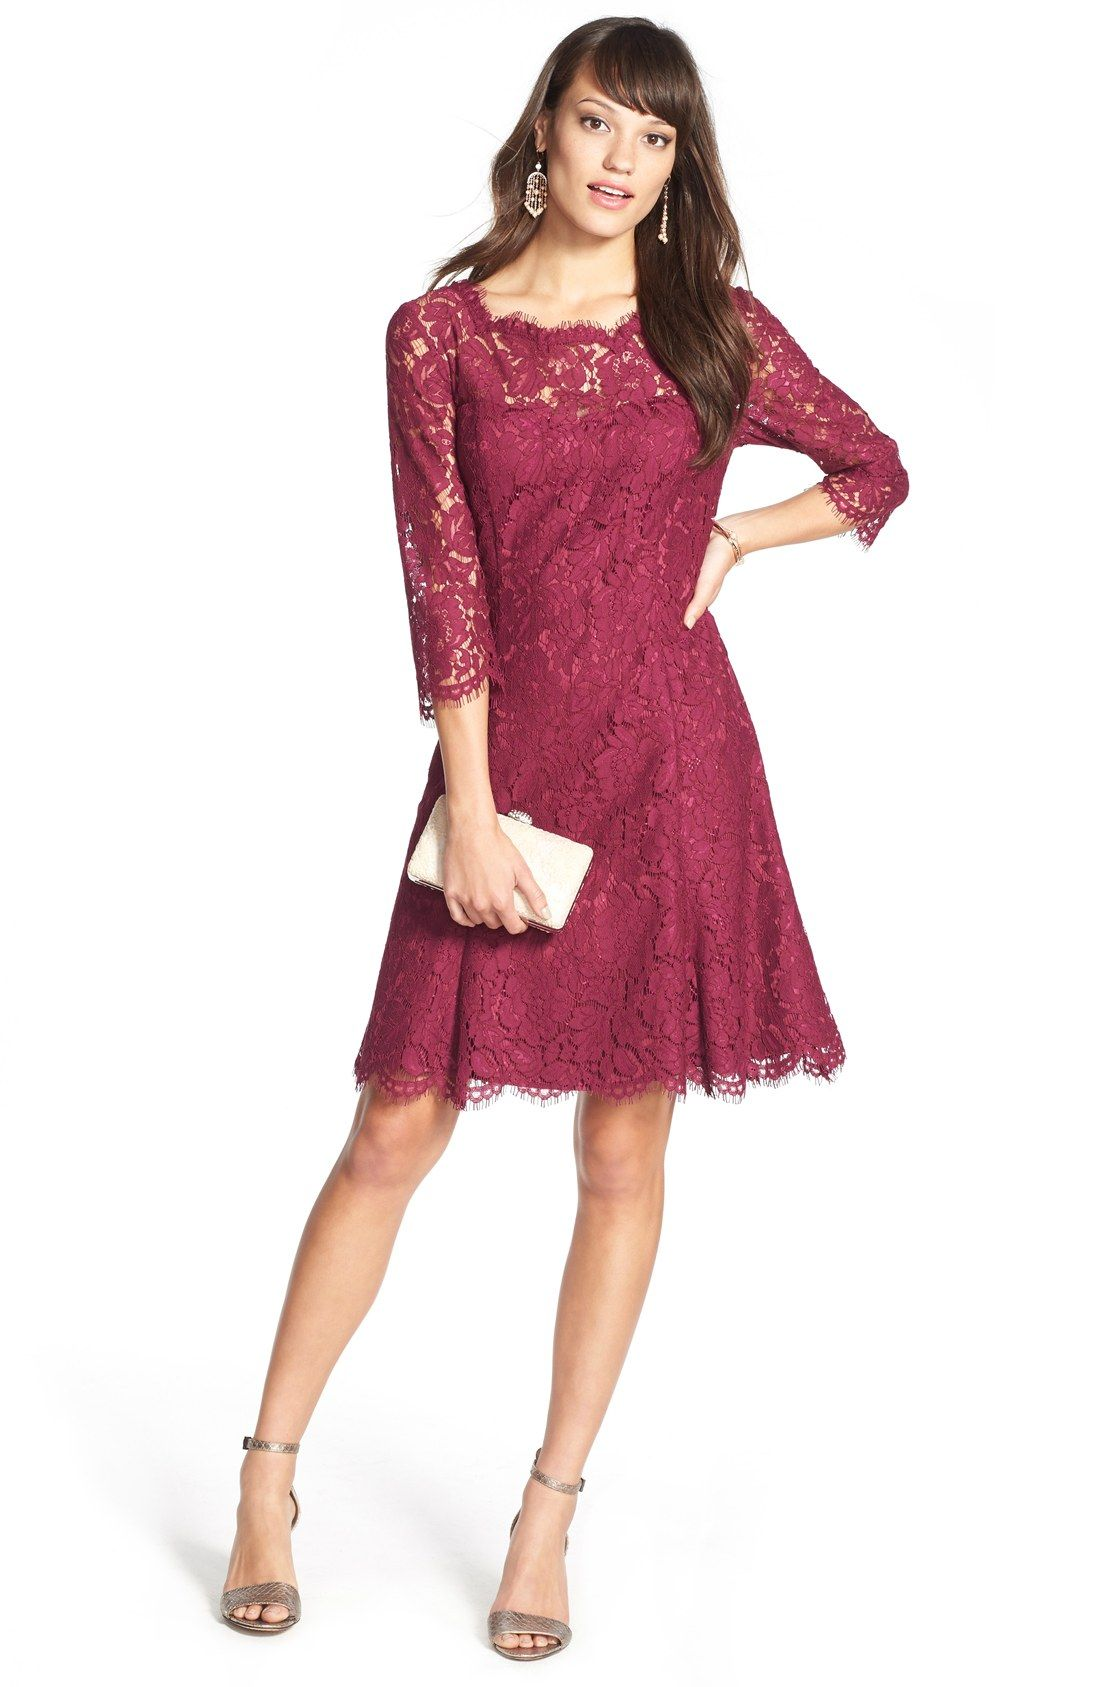 Burgundy Lace Dress Perfect Outdoor Fall Wedding Guest